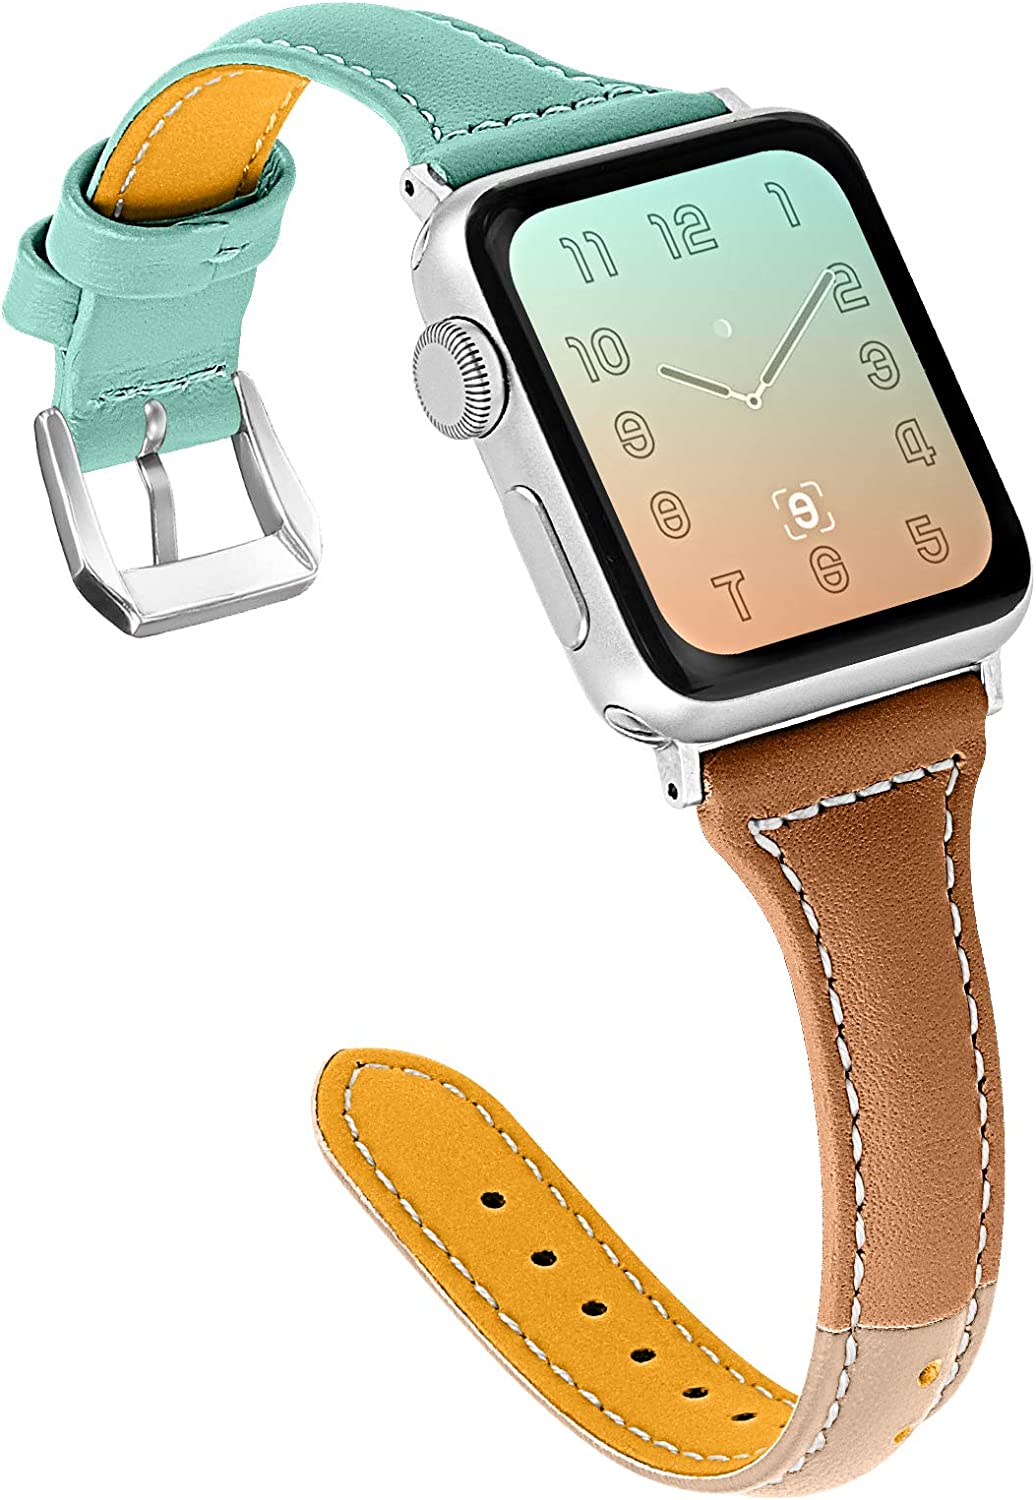 OULUCCI Compatible for Apple Watch Band 38mm 40mm, Genuine Leather Replacement iWatch Wristband Strap with Metal Buckle for iWatch SE Series 6 5 4 3 2 1, Slim Design for Women Men